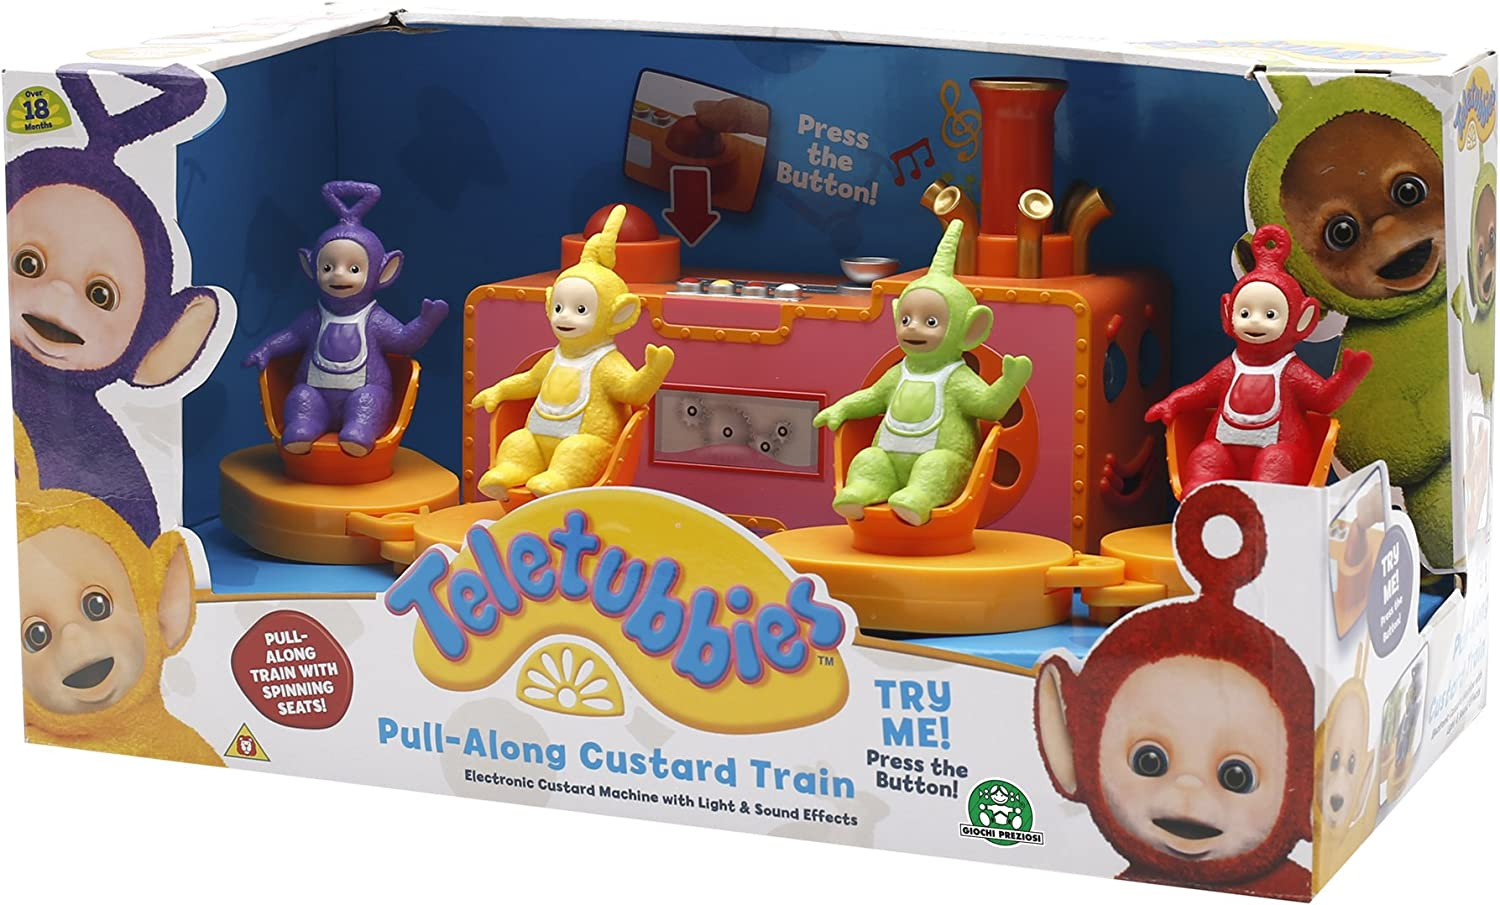 Teletubbies/TLB06000 Pull-Along Custard Ride with Lights and Sounds